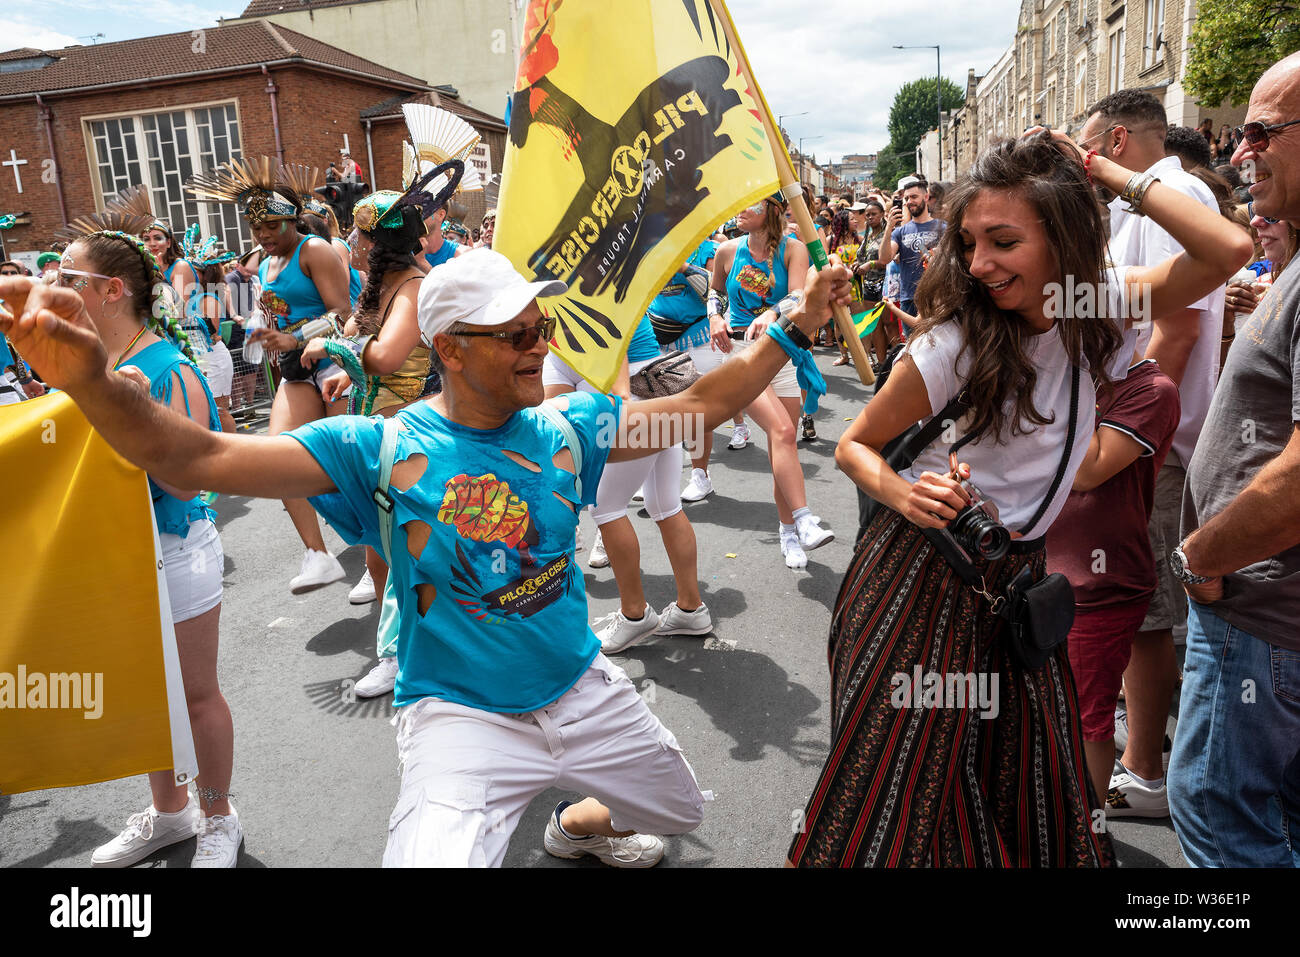 st-pauls-bristol-uk-july-6th-2019-the-51st-st-pauls-carnival-procession-wound-its-way-through-bristols-st-pauls-on-a-hot-and-sunny-saturday-afternoon-the-carnival-attracted-around-100000-people-organised-by-the-st-pauls-carnival-community-interest-company-pictured-man-from-the-procession-persuades-woman-spectator-to-dance-credit-stephen-bellalamy-W36E1P.jpg